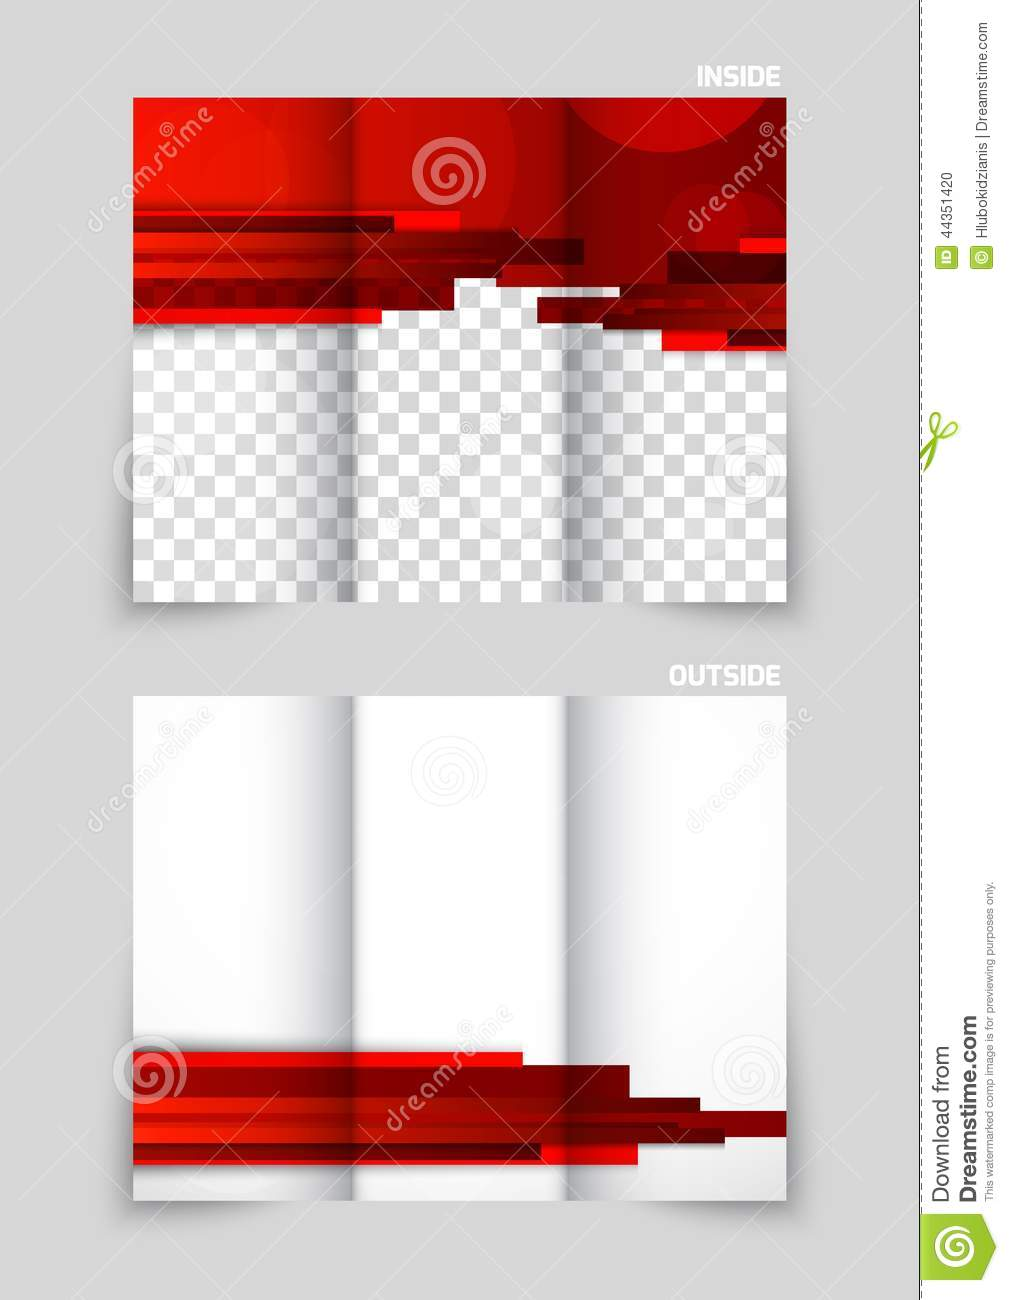 Tri fold brochure template design stock vector for Red brochure template